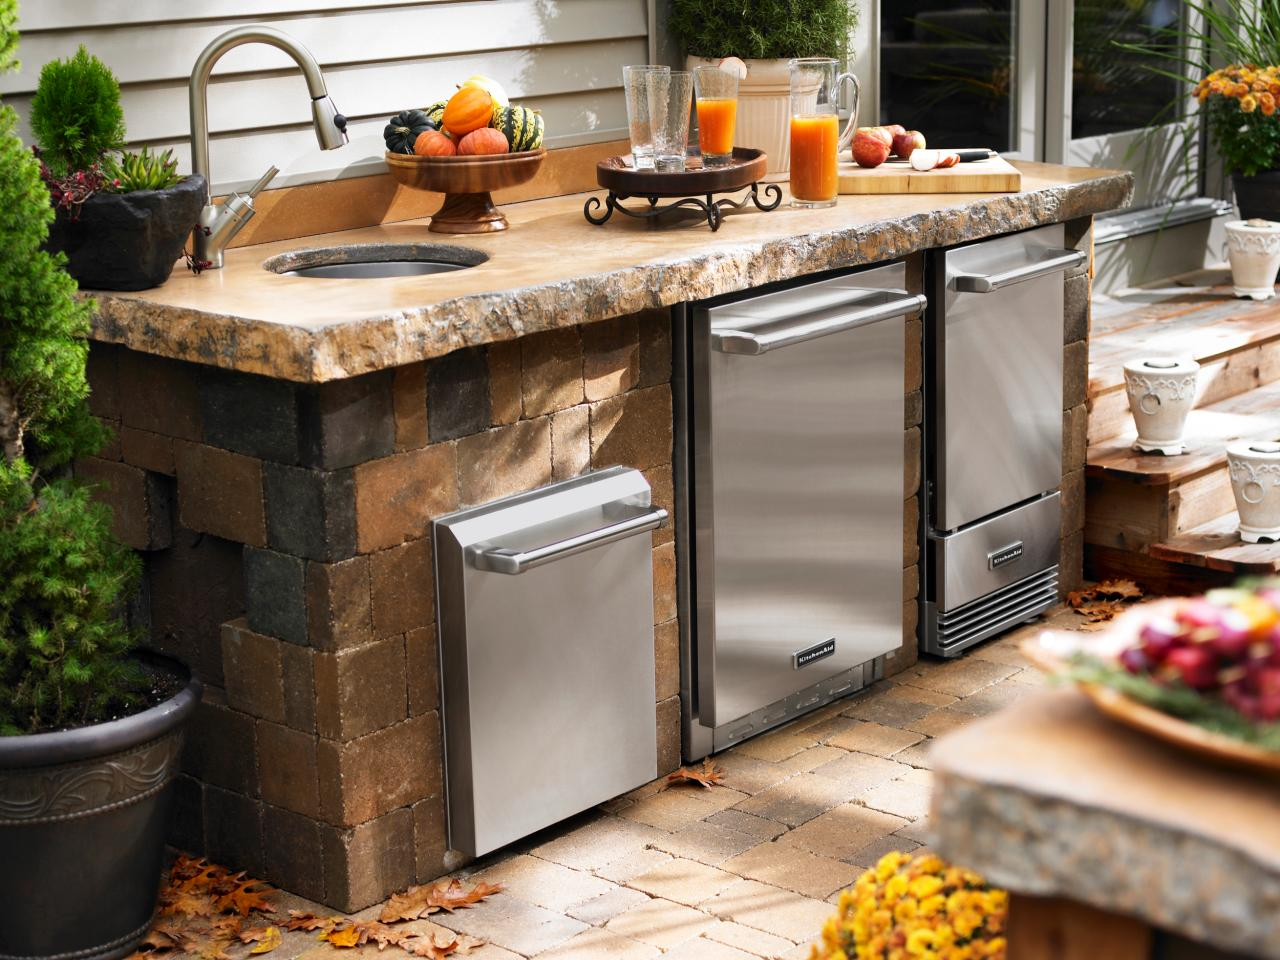 Outdoor Kitchen Countertops: Pictures, Tips & Expert Ideas | HGTV